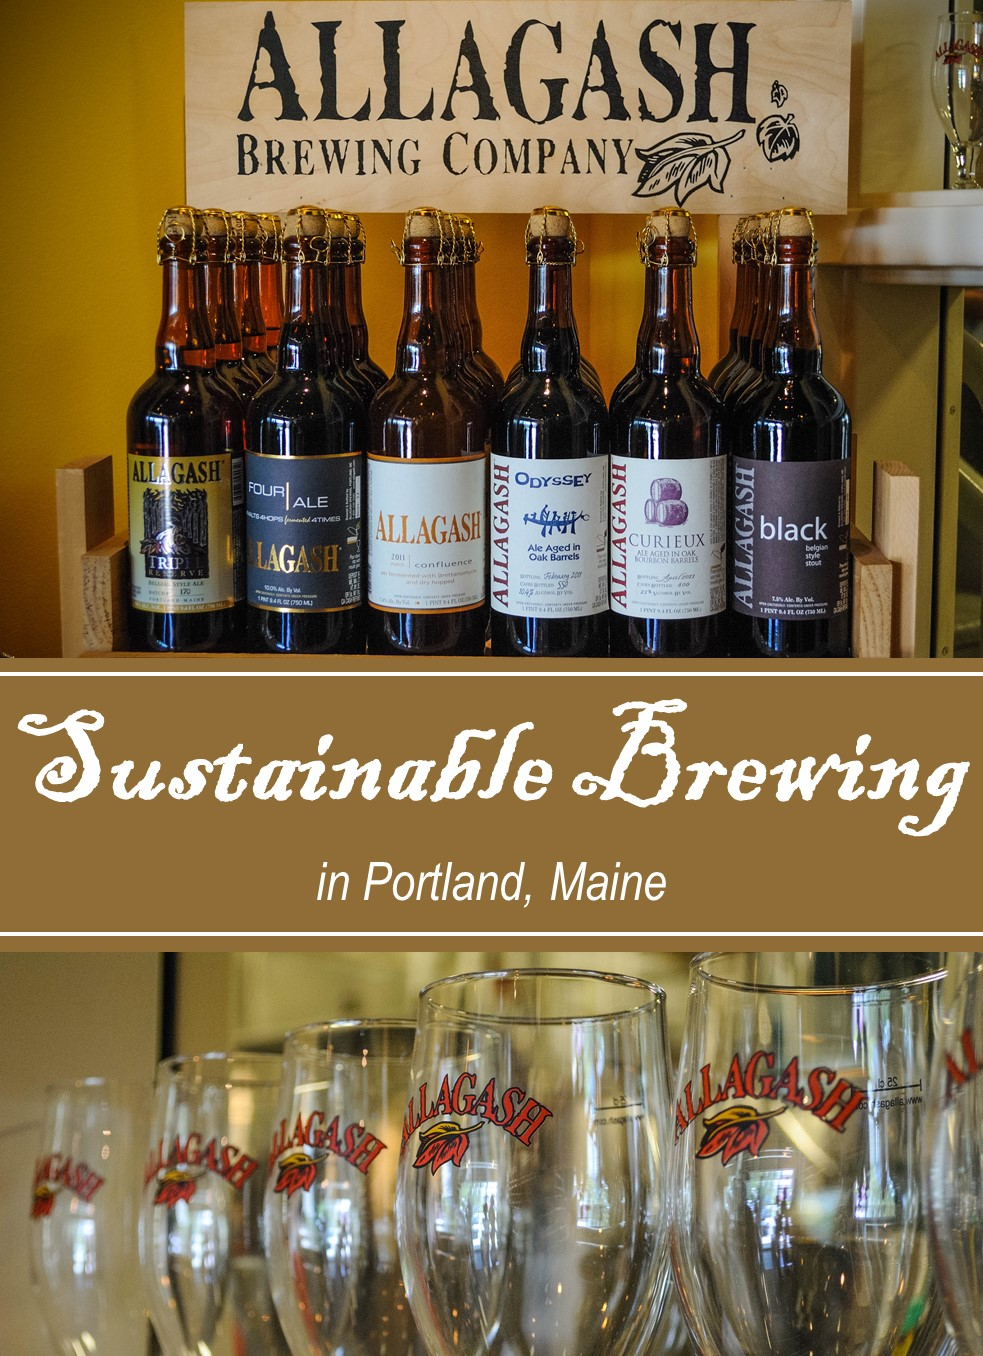 Saving the Planet One Beer at a Time in Portland, Maine